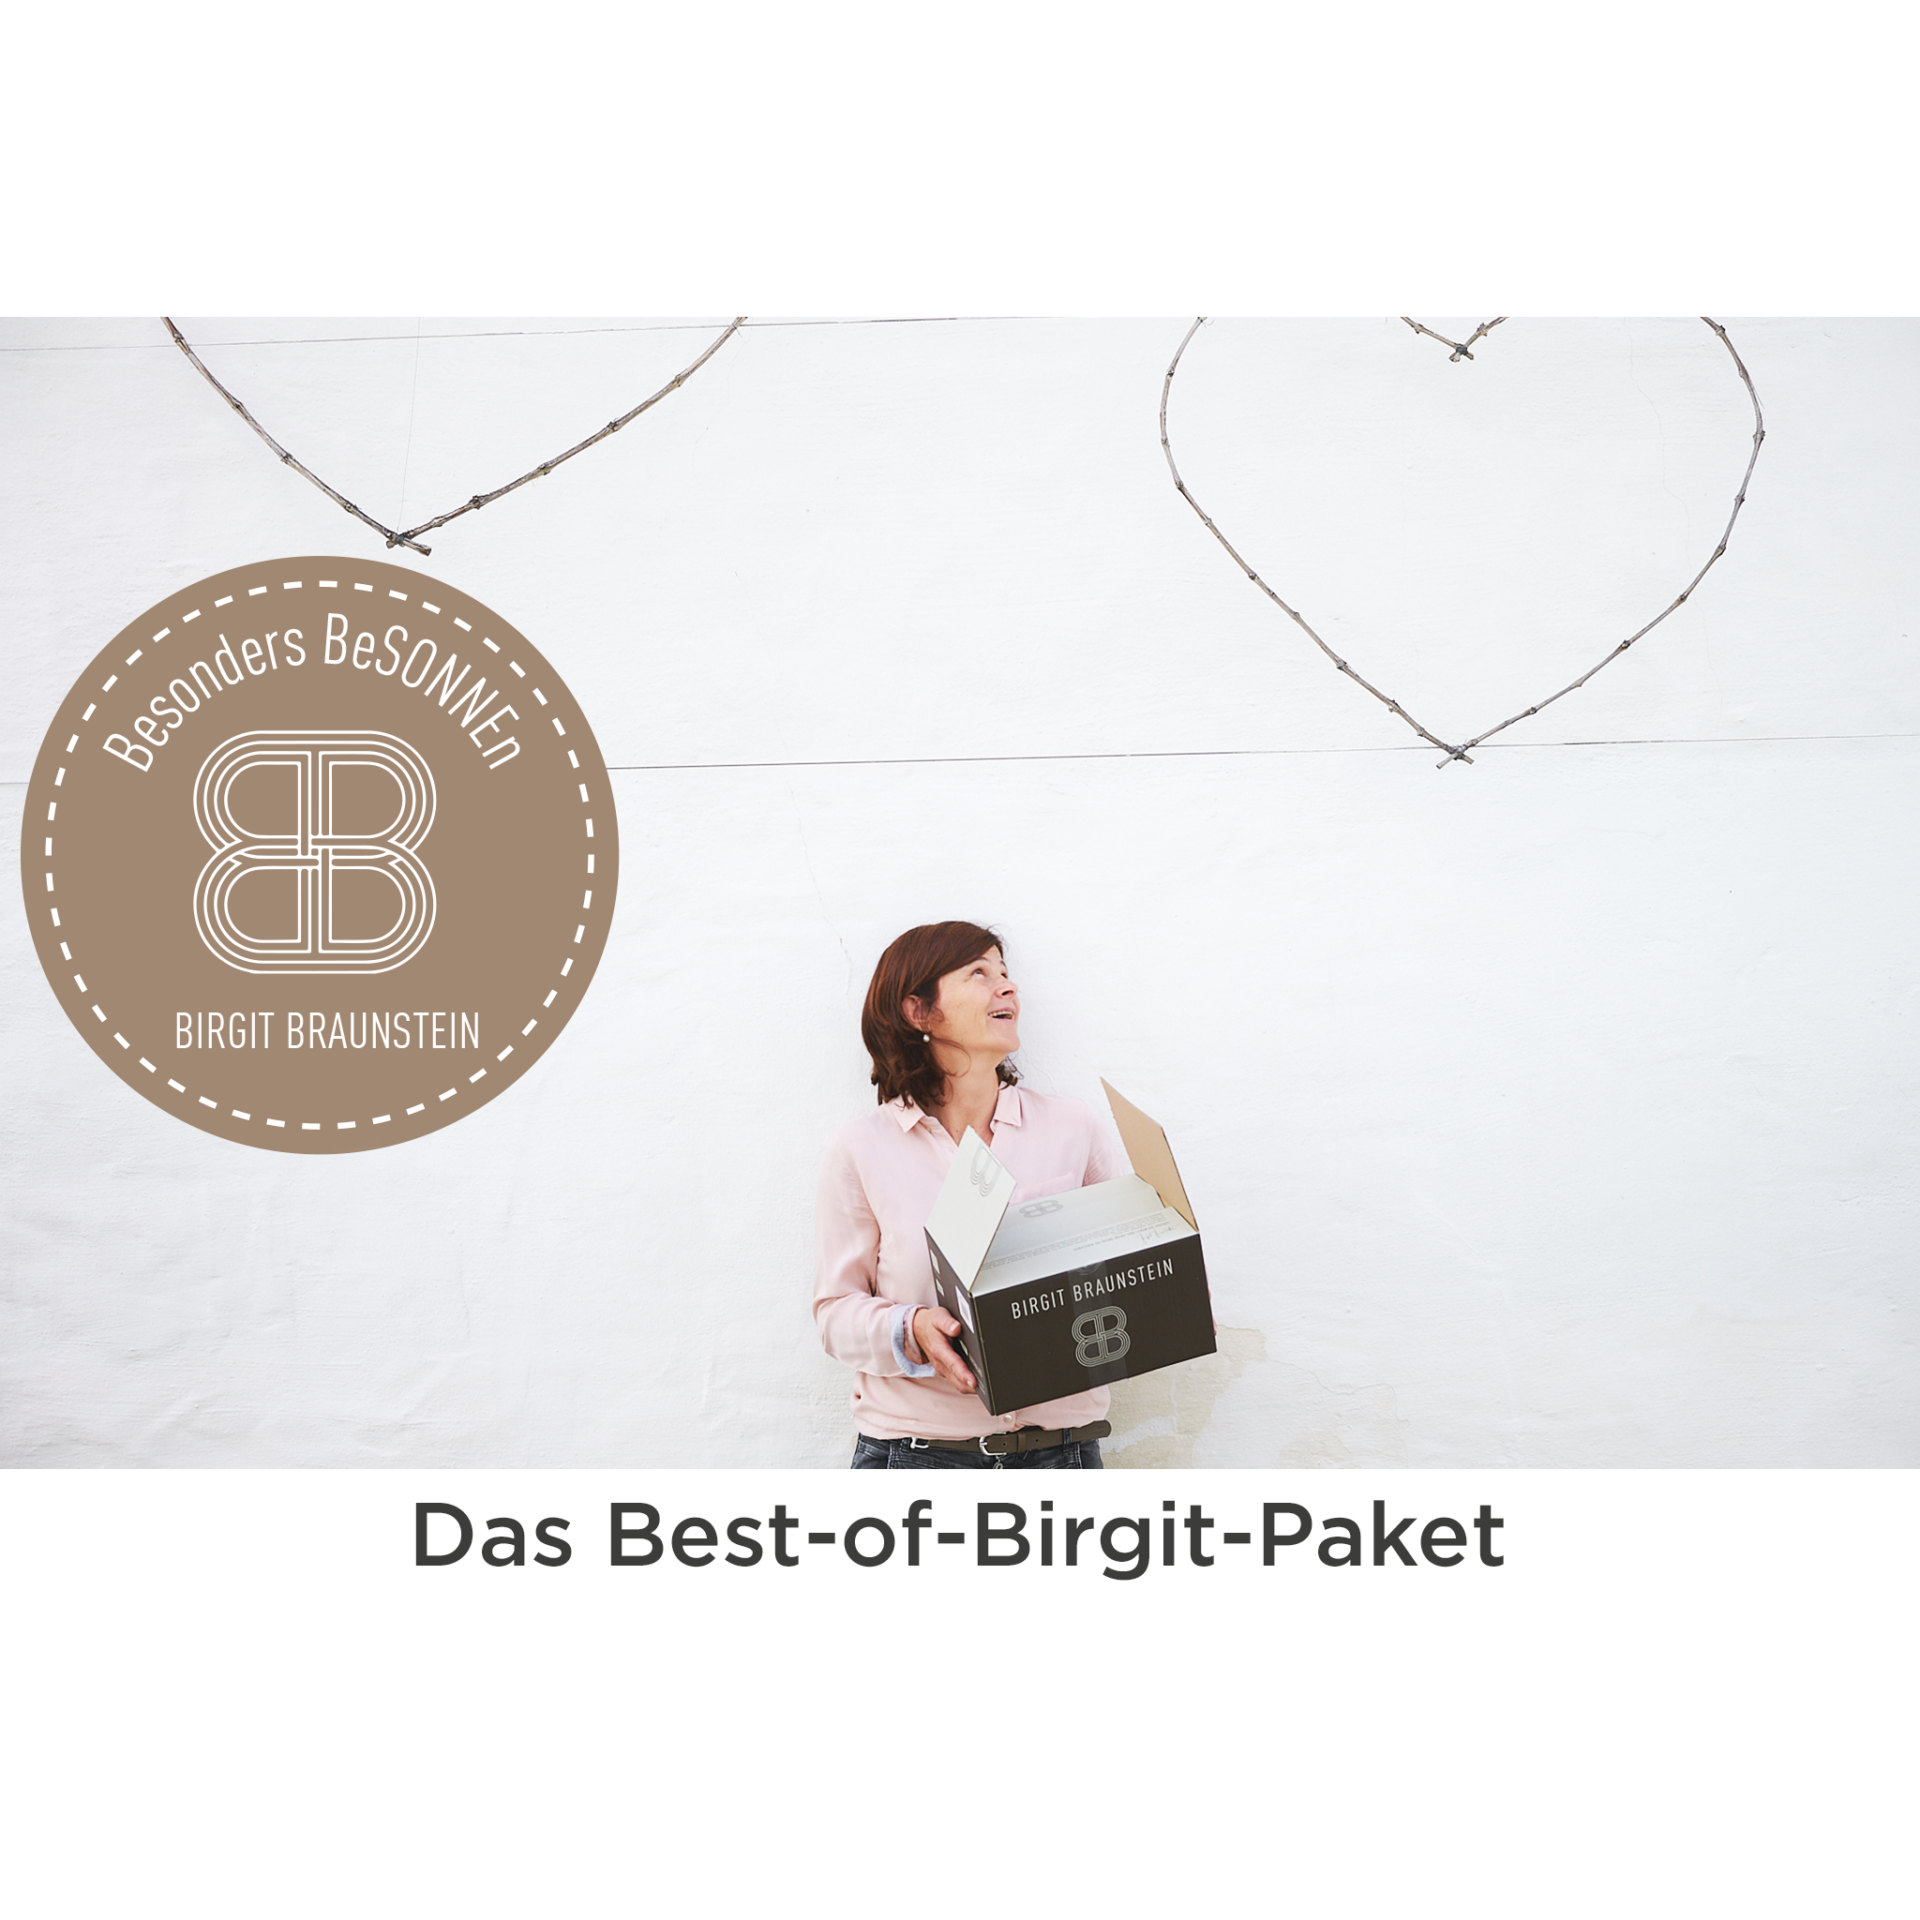 Best-of-Birgit-Paket